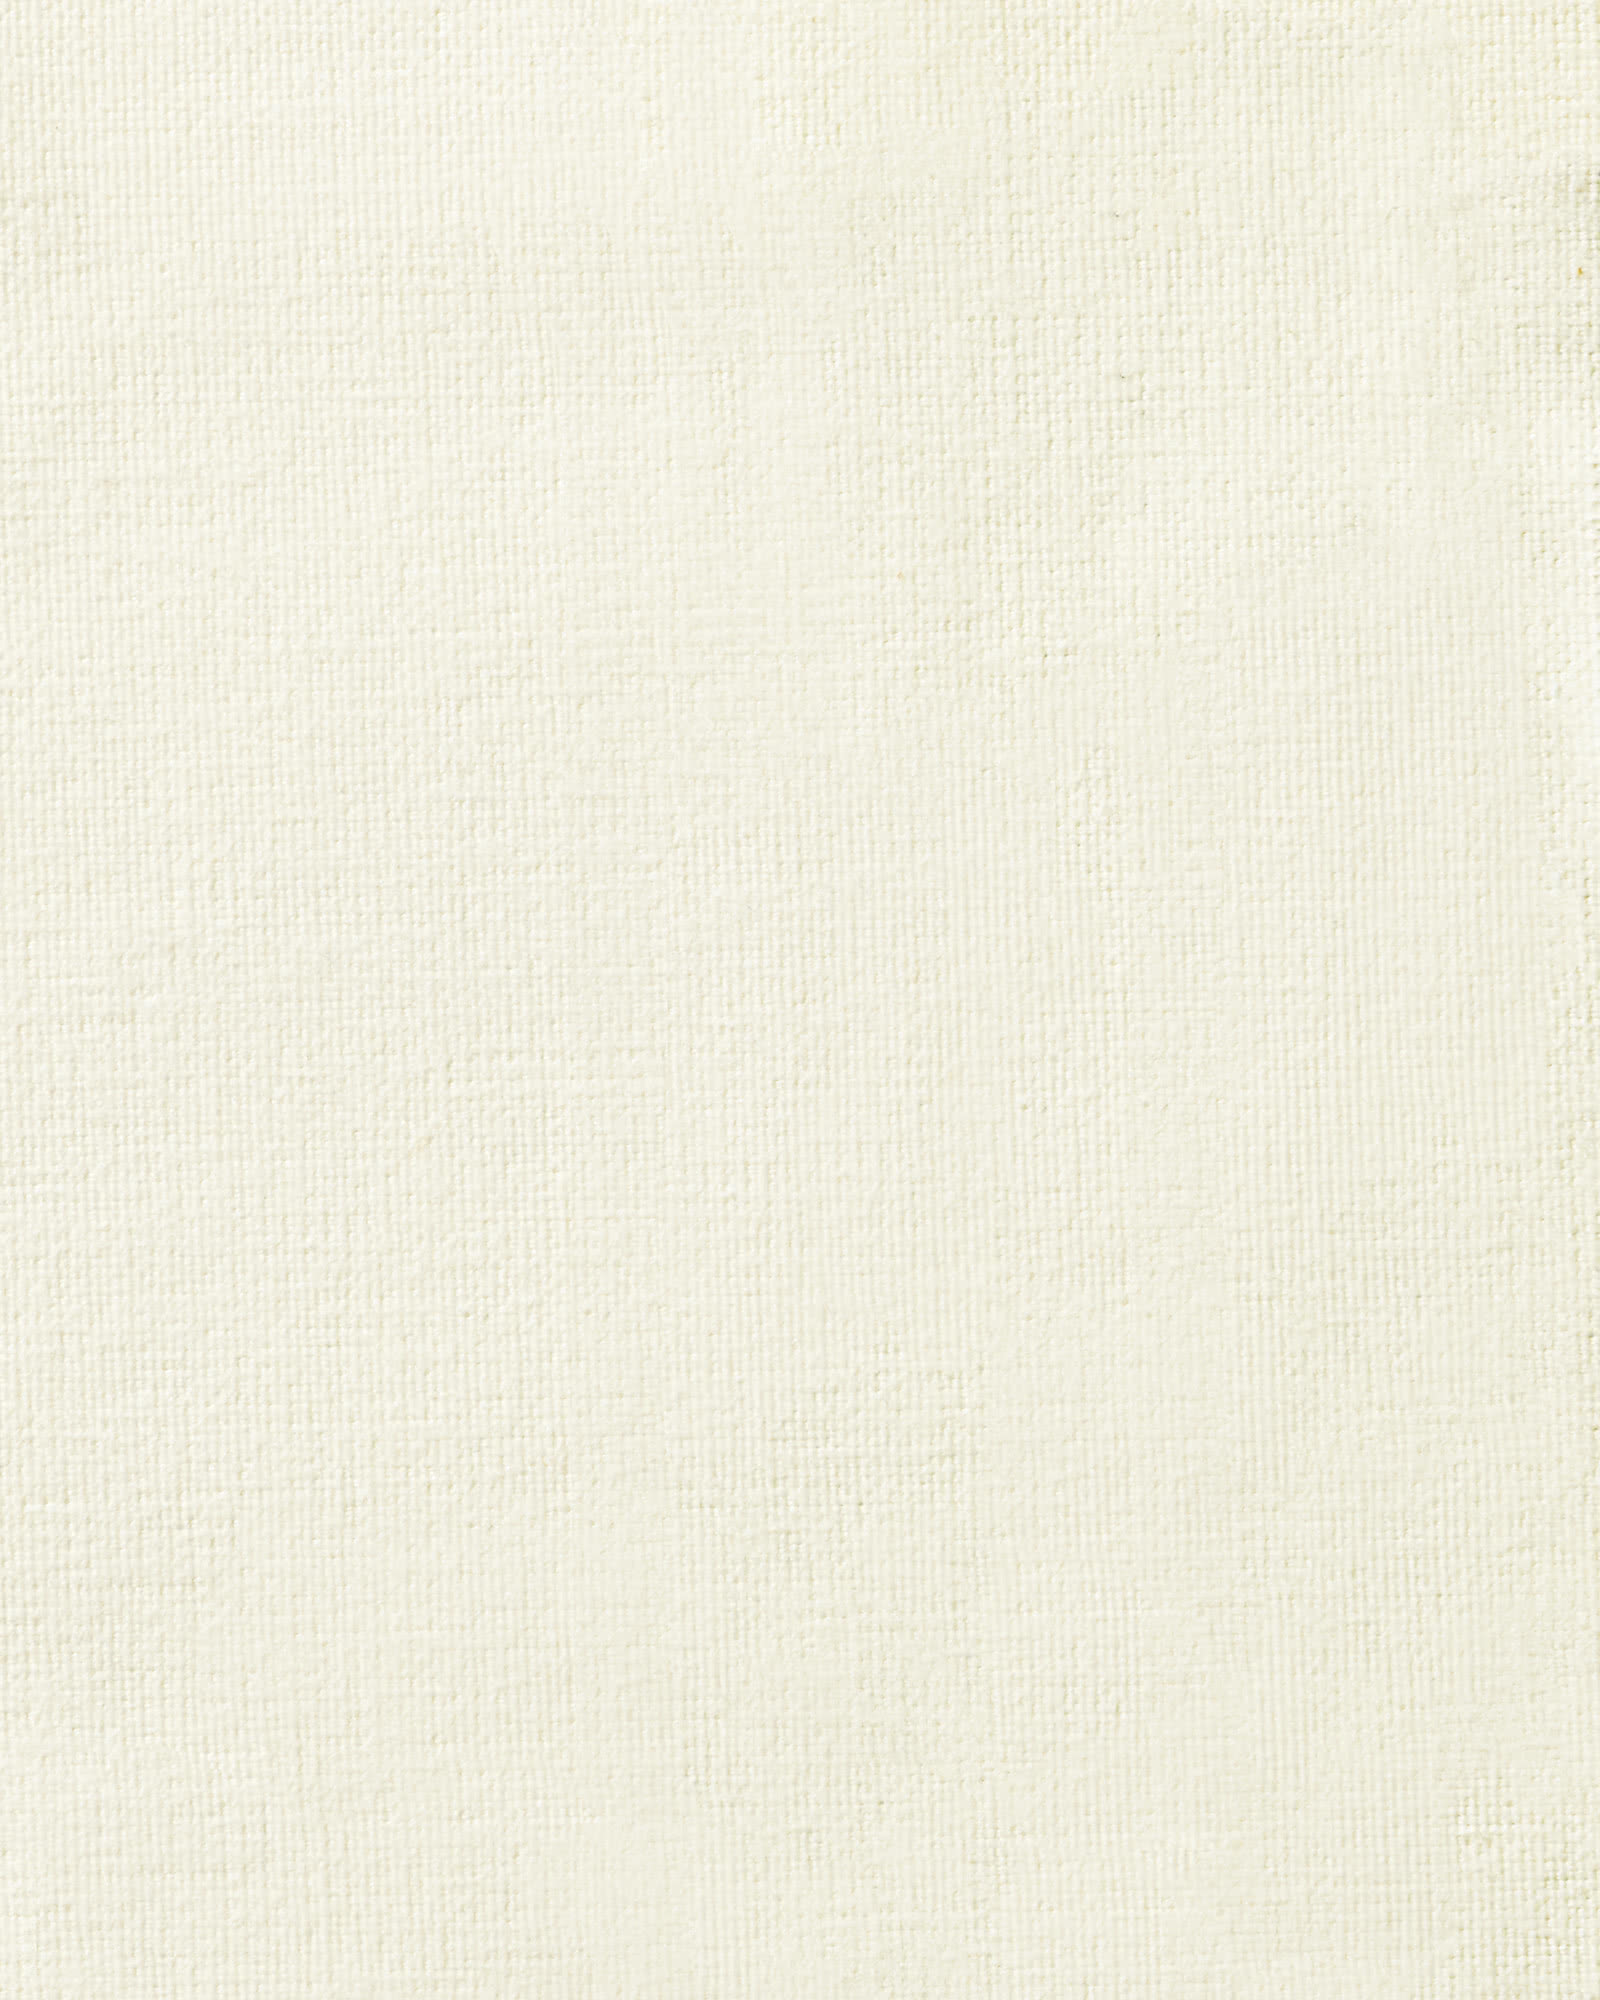 Brushed Cotton Canvas - Sugar Cane,